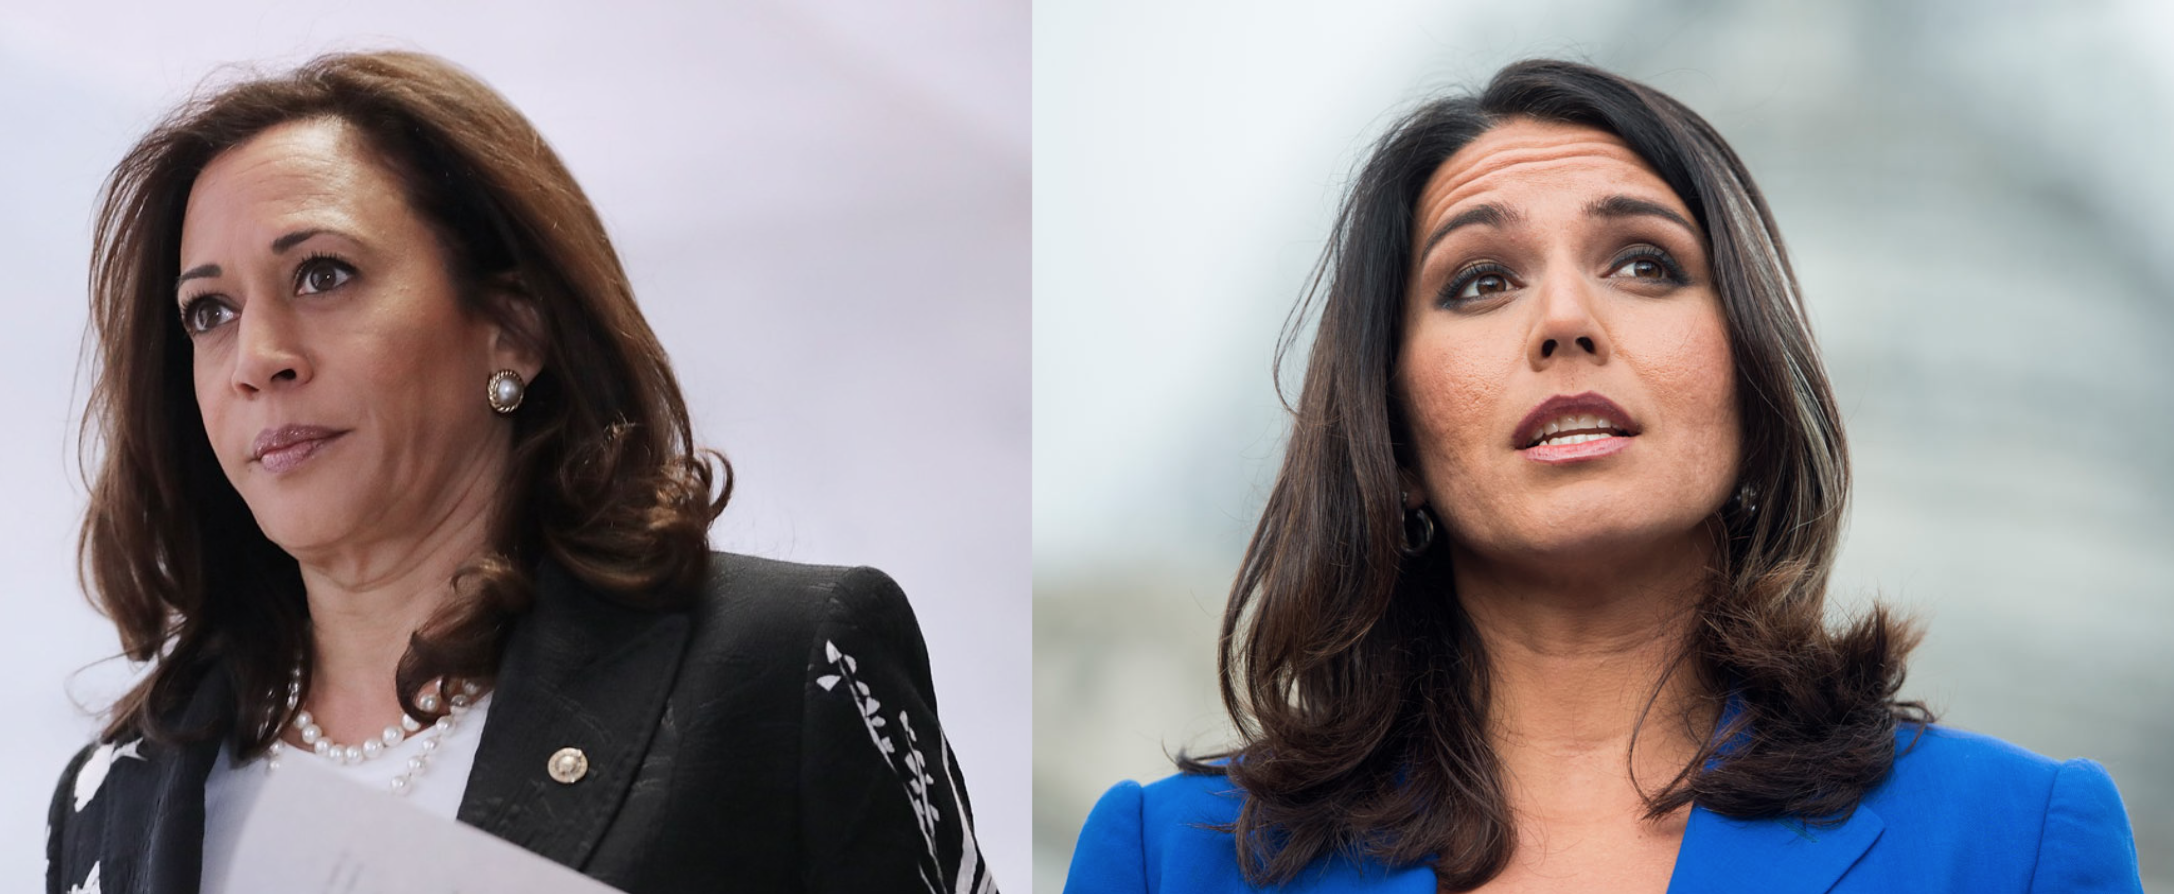 Senator Kamala Harris (D-CA) and Representative Tulsi Gabbard (D-HI), both of whom recently announced their intentions to run for president ( Image ,  Image )